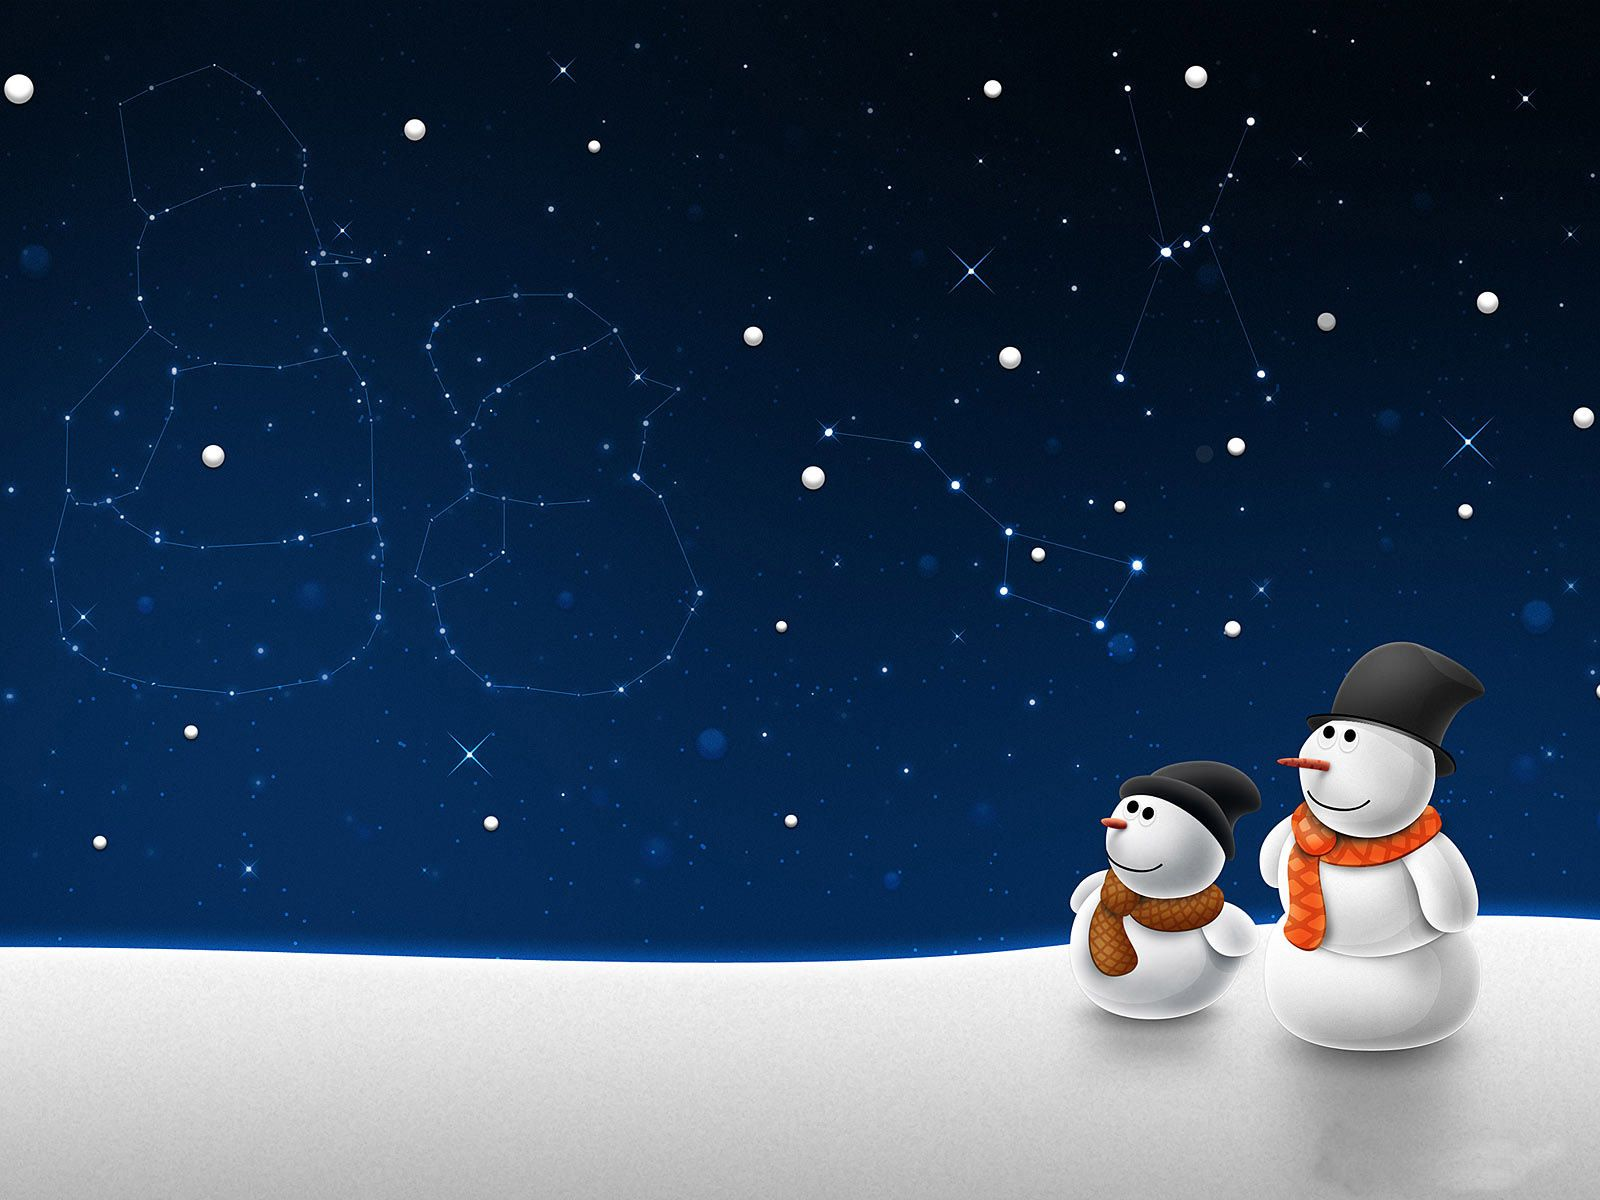 Animated Christmas PowerPoint Slides | Free Christmas PowerPoint ...